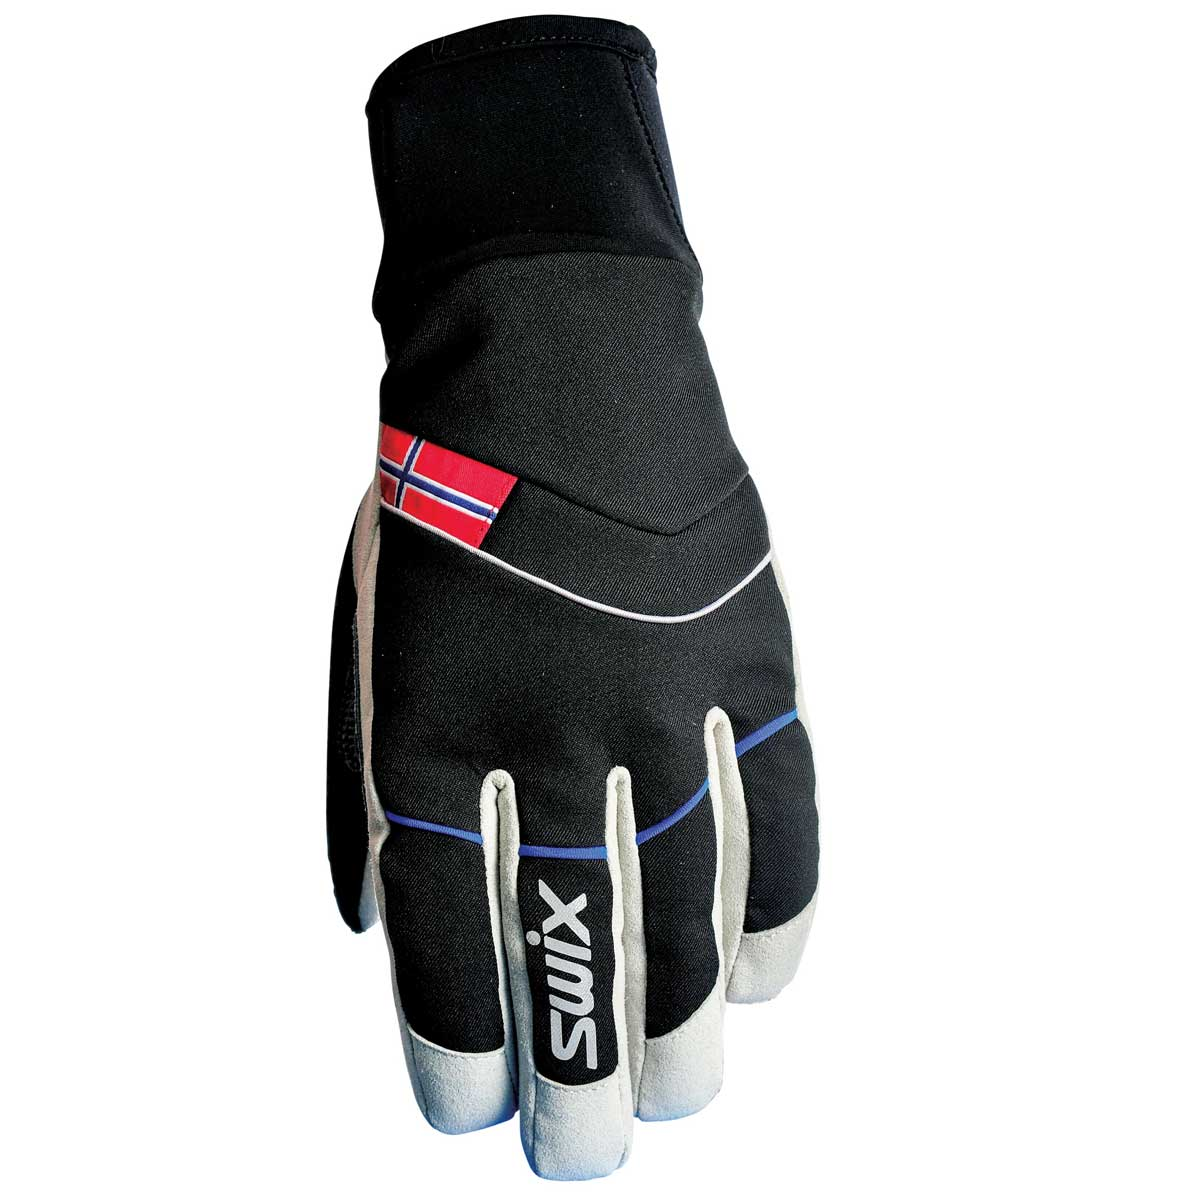 Swix Men's Shield Glove in Black